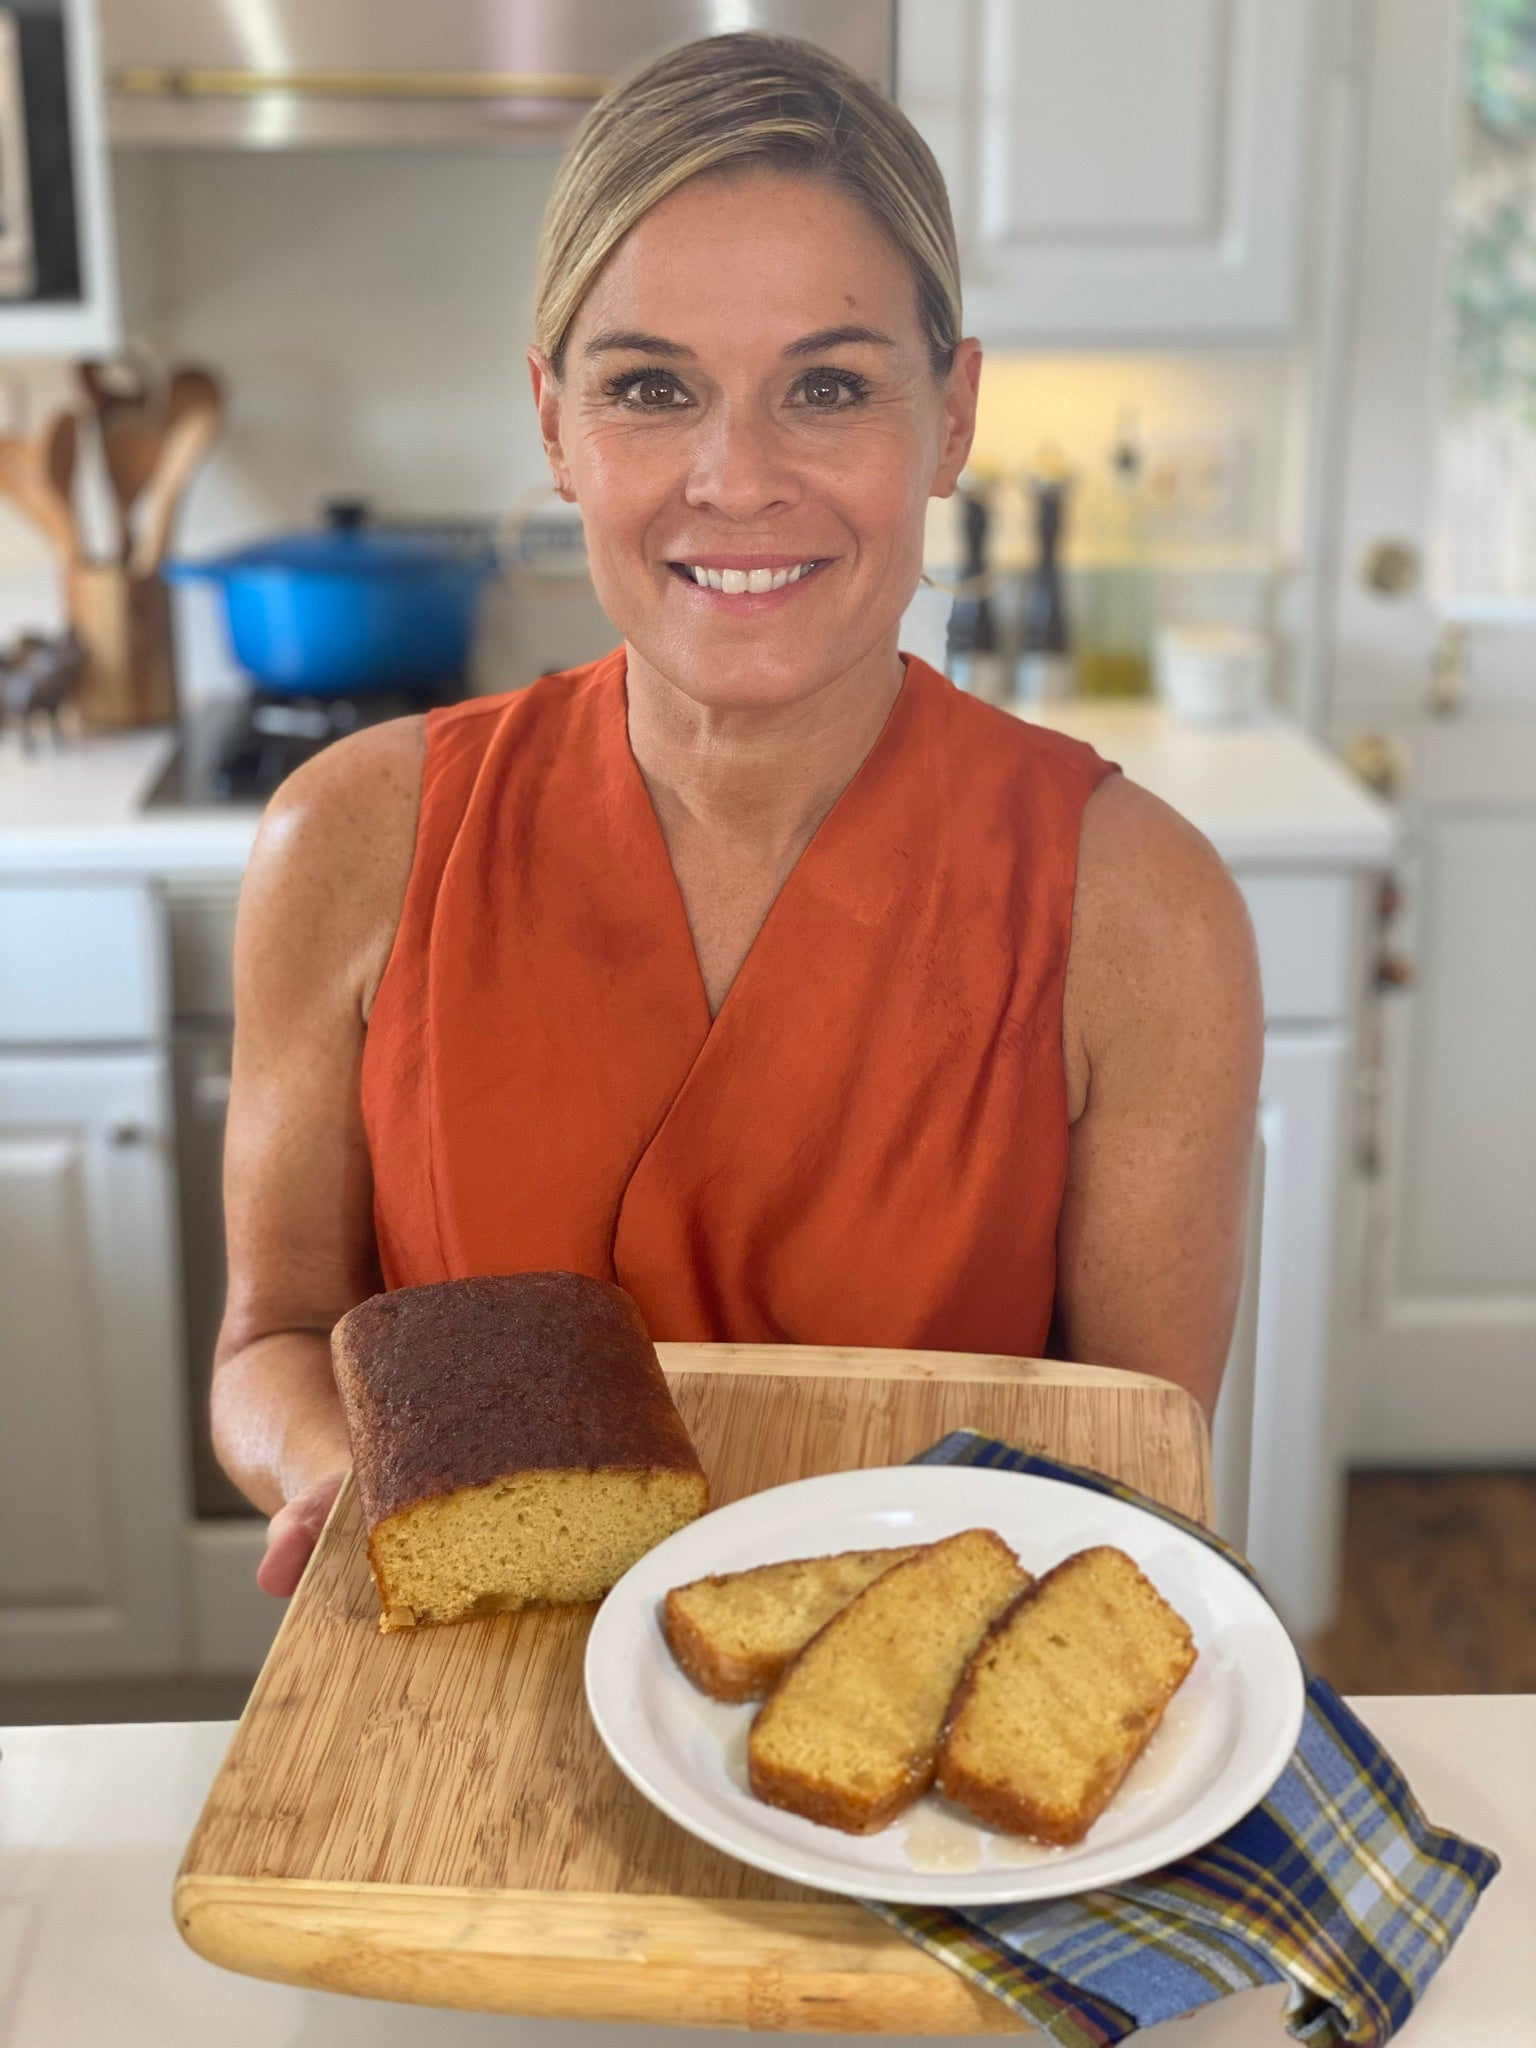 Cat Cora's Apple Cider & Candied Ginger Loaf Cakes with Apple Cider Glaze Dipping Sauce